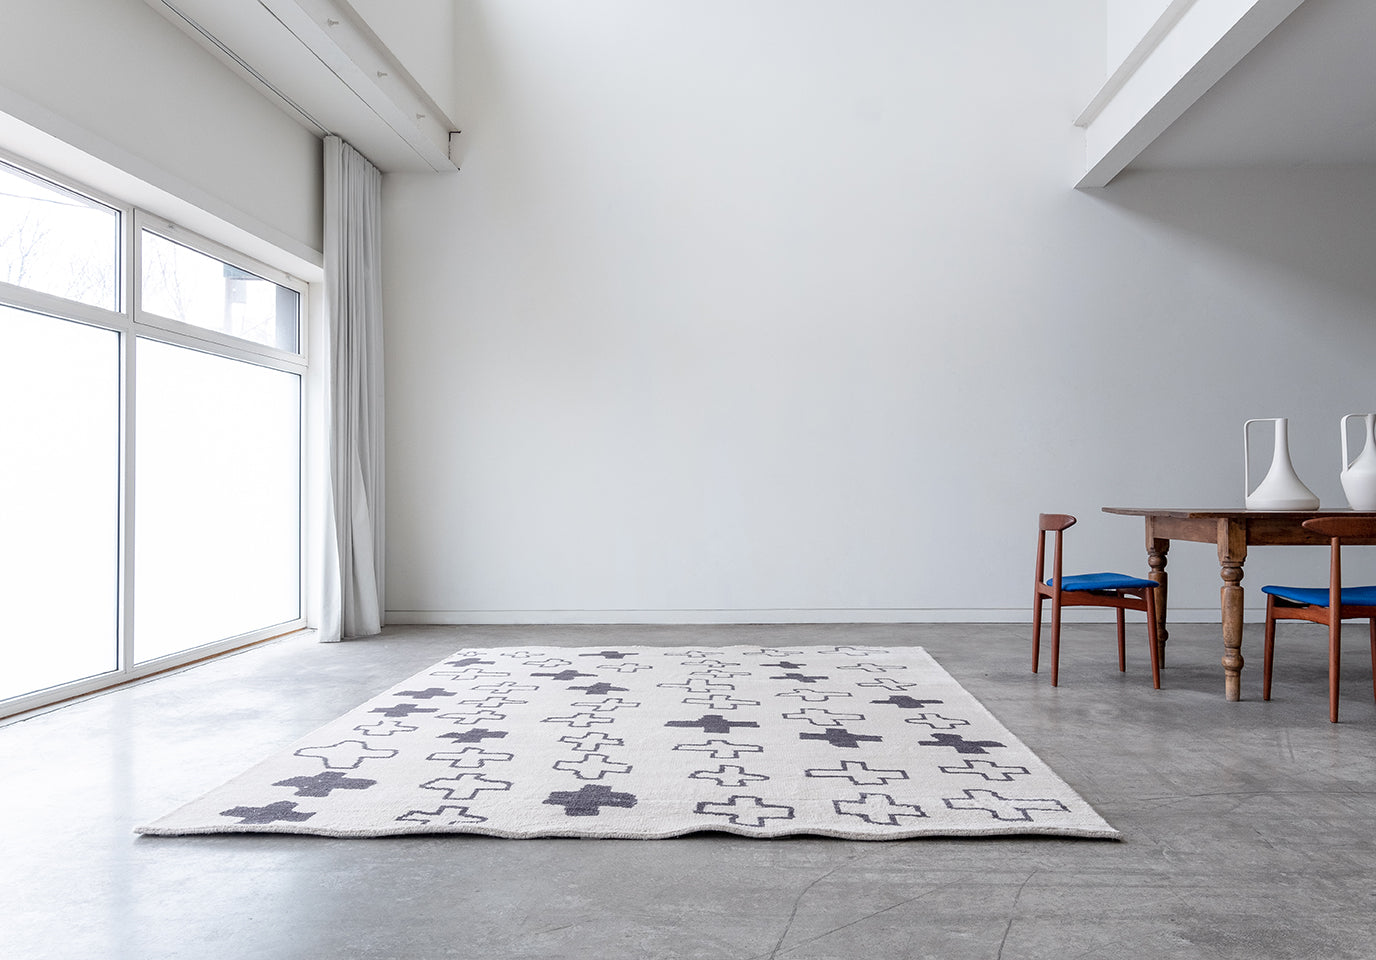 Cream and grey cross patterned rug sitting on the floor next to a wood table with two chairs in a white room